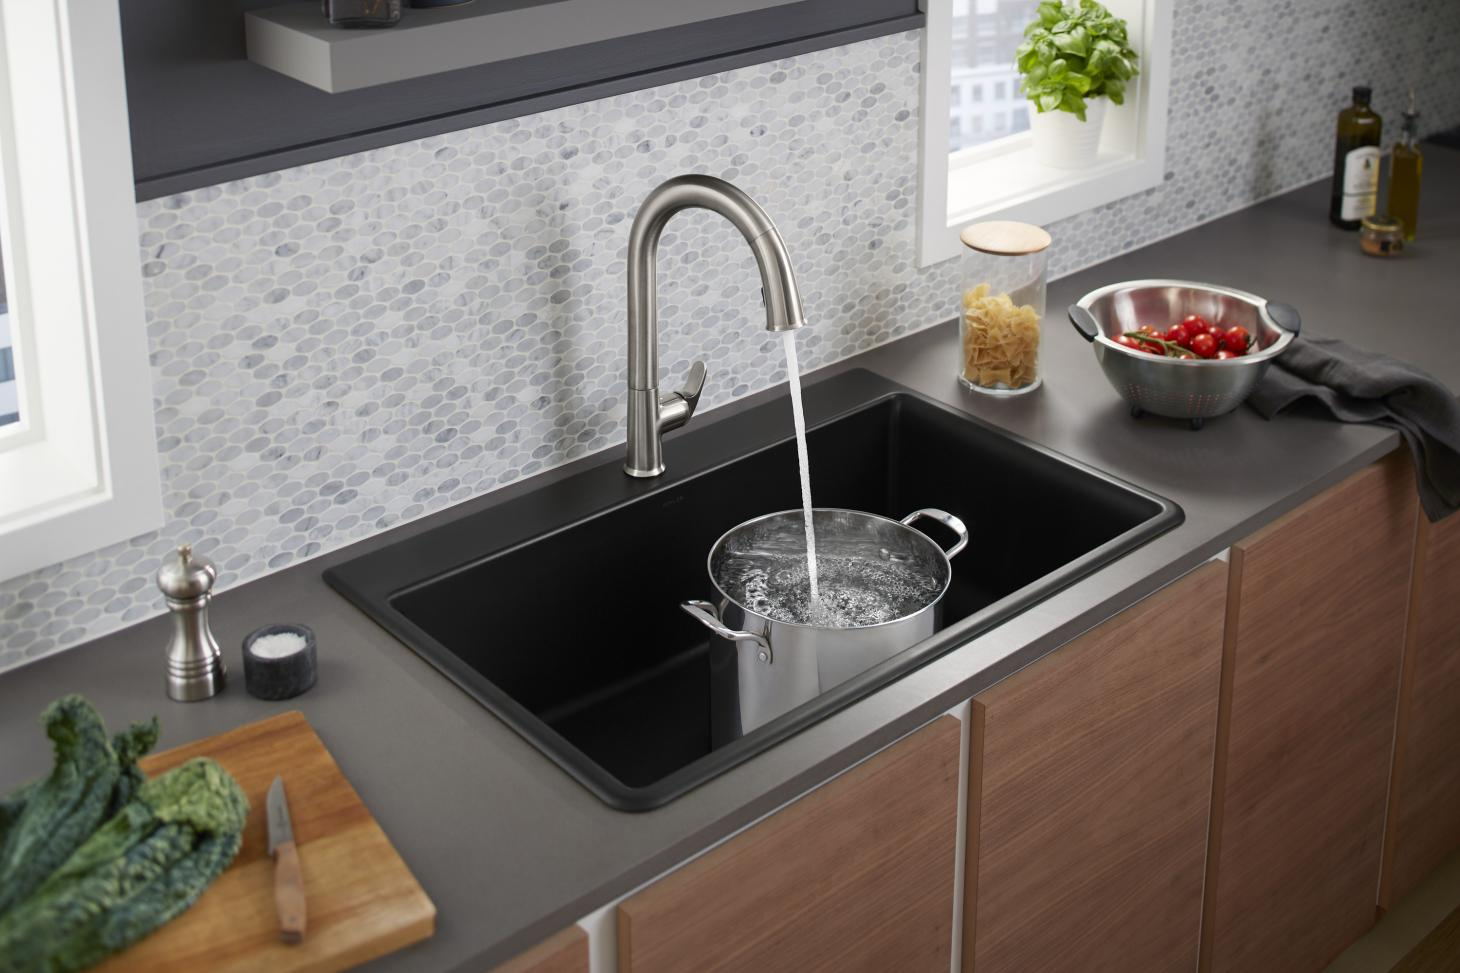 A kitchen tap with water coming out into a pot inside the sink